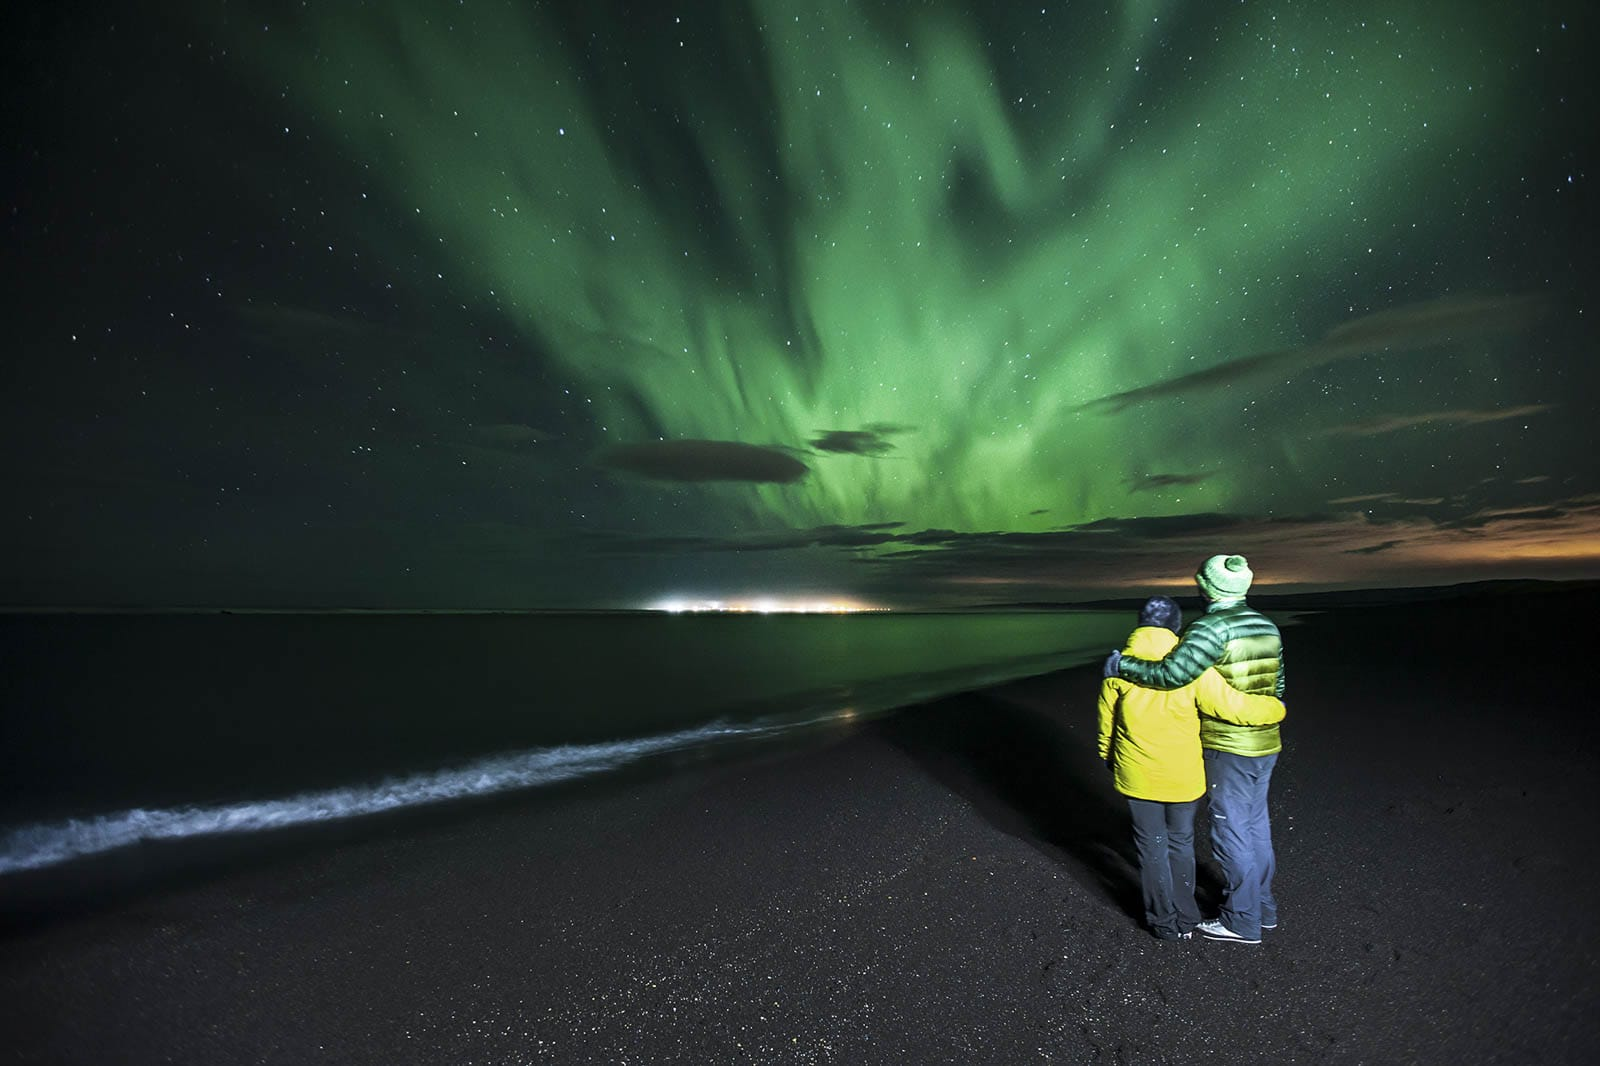 By the ocean looking at the northern lights